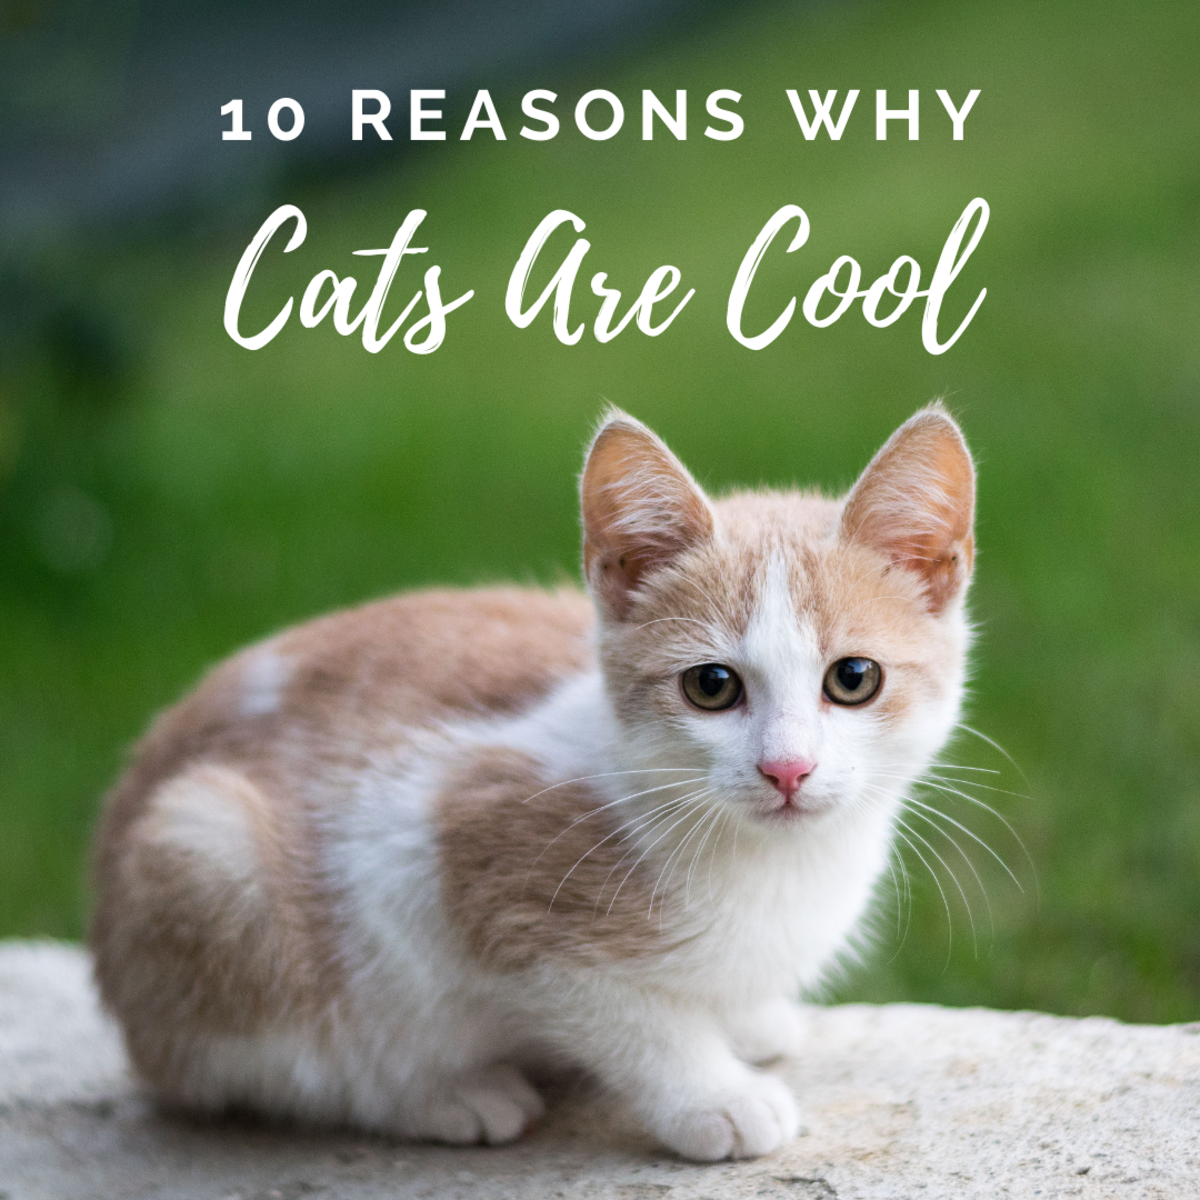 10 reasons why cats are awesome, amazing creatures